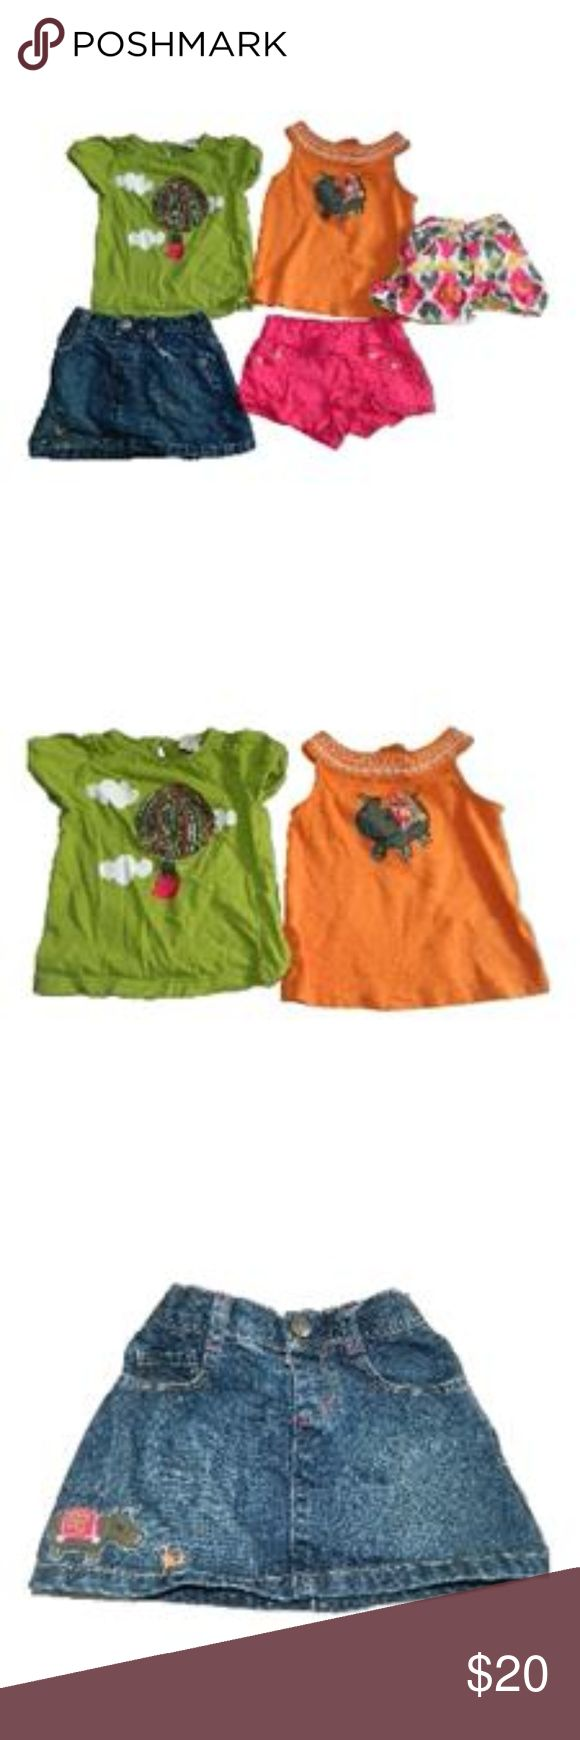 Gymboree Batik Summer 5-pc Bundle sz 2T Hippos Up for your consideration is a lot of (5) Gymboree Batik Summer items in good to very good condition (wash wear) sz 2T.  Lot includes:  - Orange sleeveless shirt with hippo on the front (wash wear/pilling) -Green hippo in a hot air balloon shirt (wash wear) -Multi-color adjustable waist shorts- (wash wear) -Pink pull on shorts with rhinestone details...elastic band on the back- (wash wear) -Denim pull on skirt with a hippo on it Gymboree…